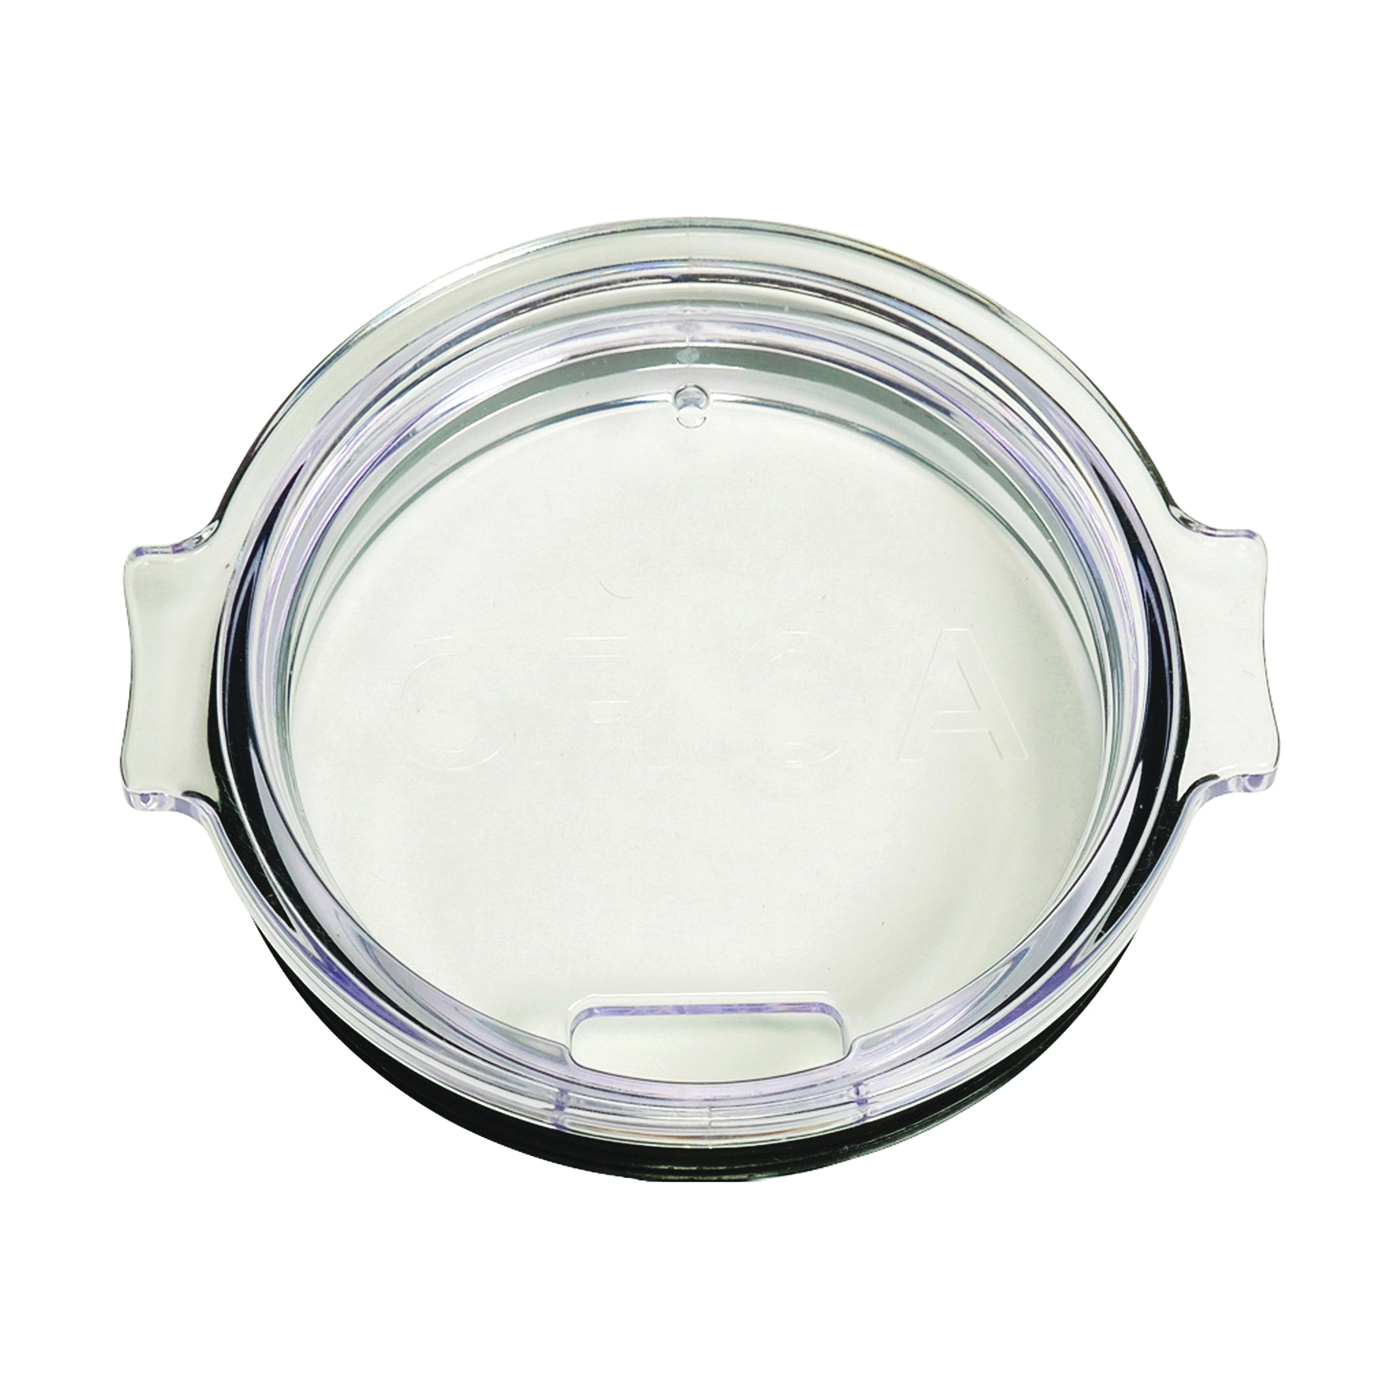 Picture of ORCA ORCCLCHLID Chaser Lid, Classic, Polymer, Clear, For: Fits 27 oz ORCA Chaser